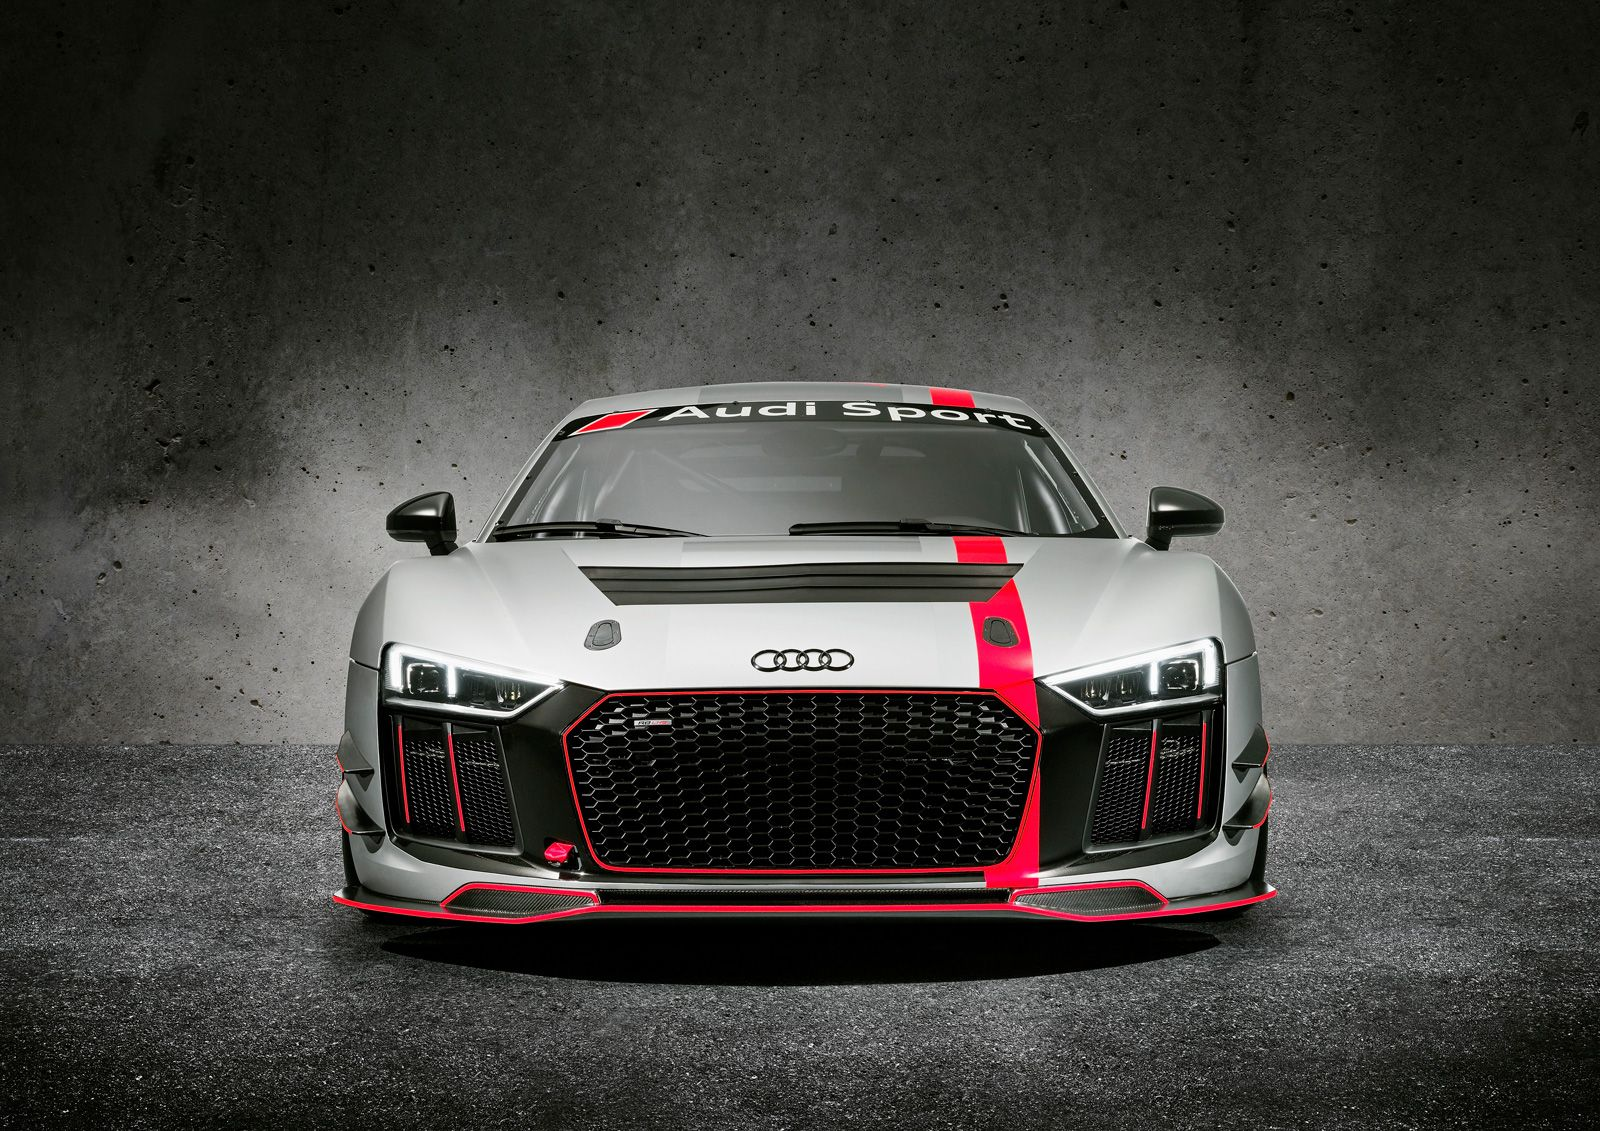 Perfect New Customer Racing Car Can Now Be Ordered Victories For Audi Sport  Customers In New Zealand And Australia Season Closes On A Positive Note For  Belg